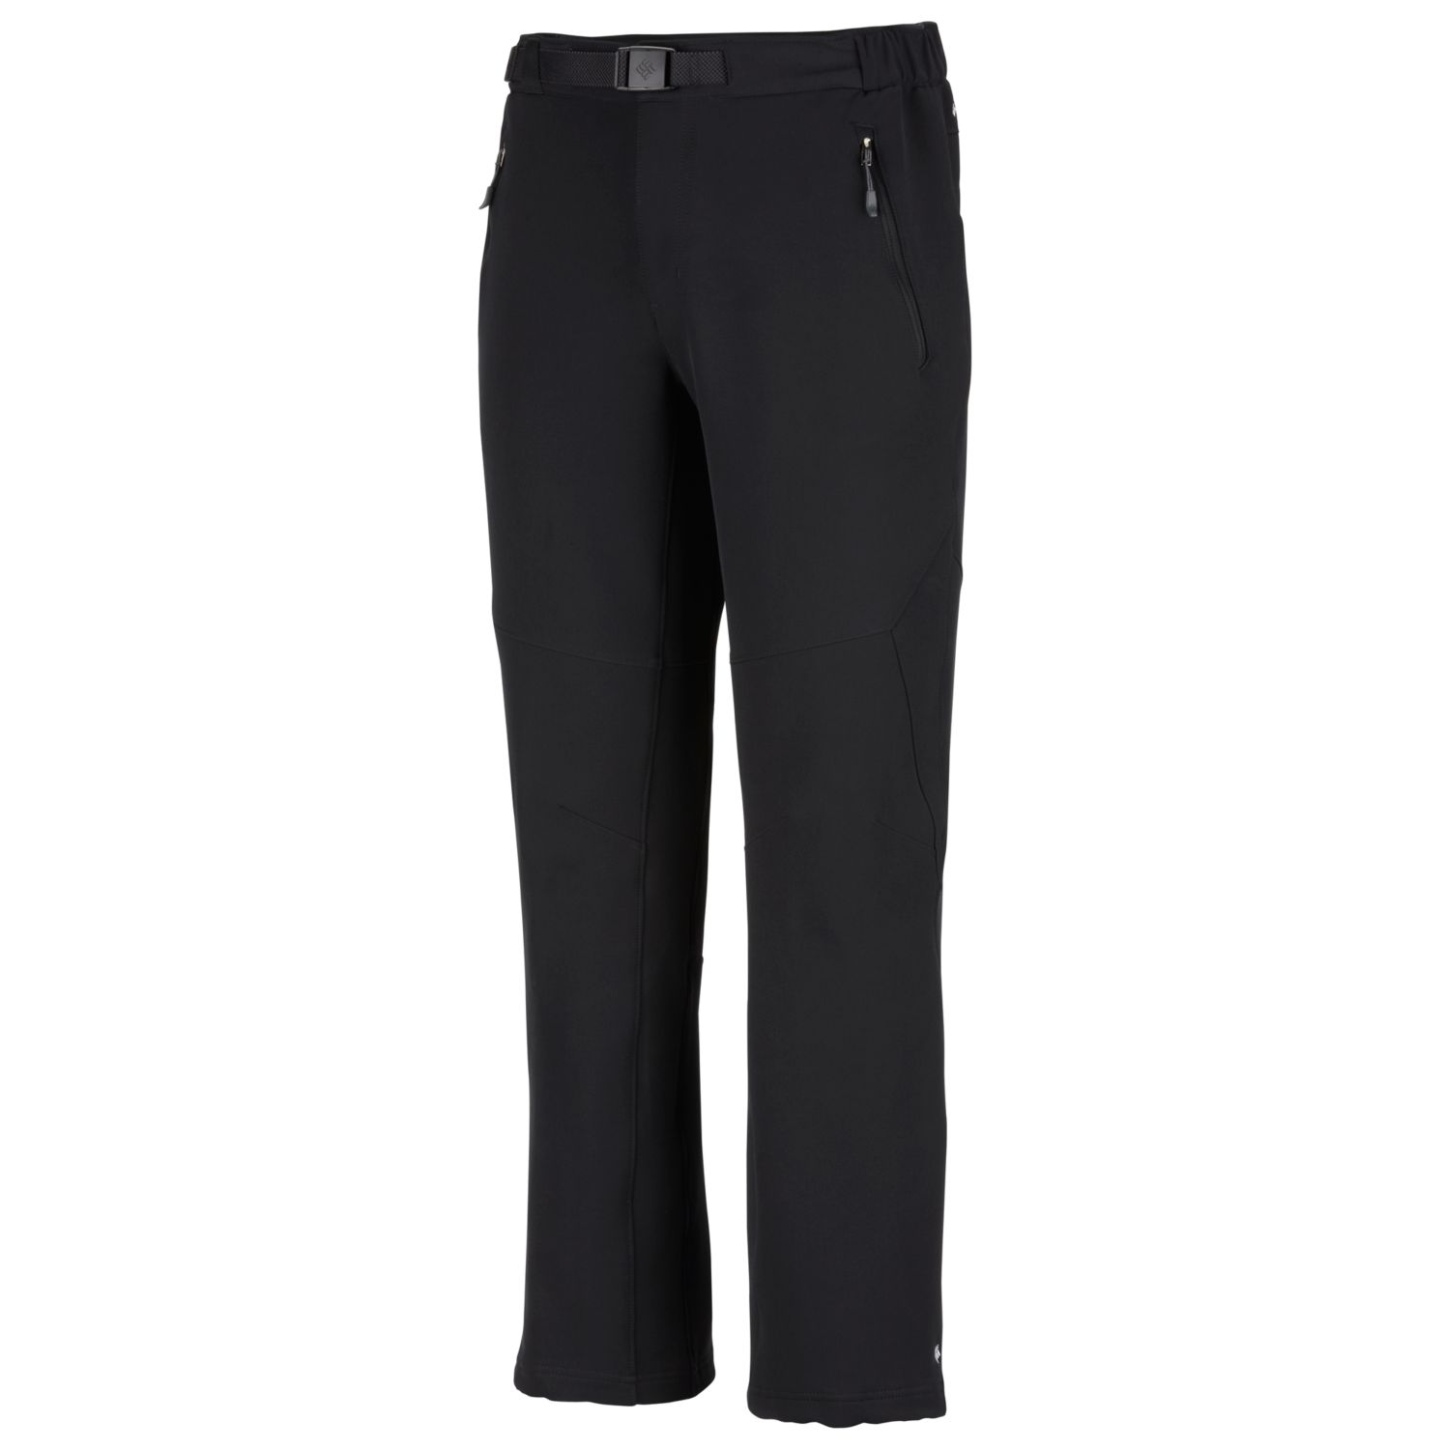 Columbia Men's Passo Alto Heat Trousers Black-30